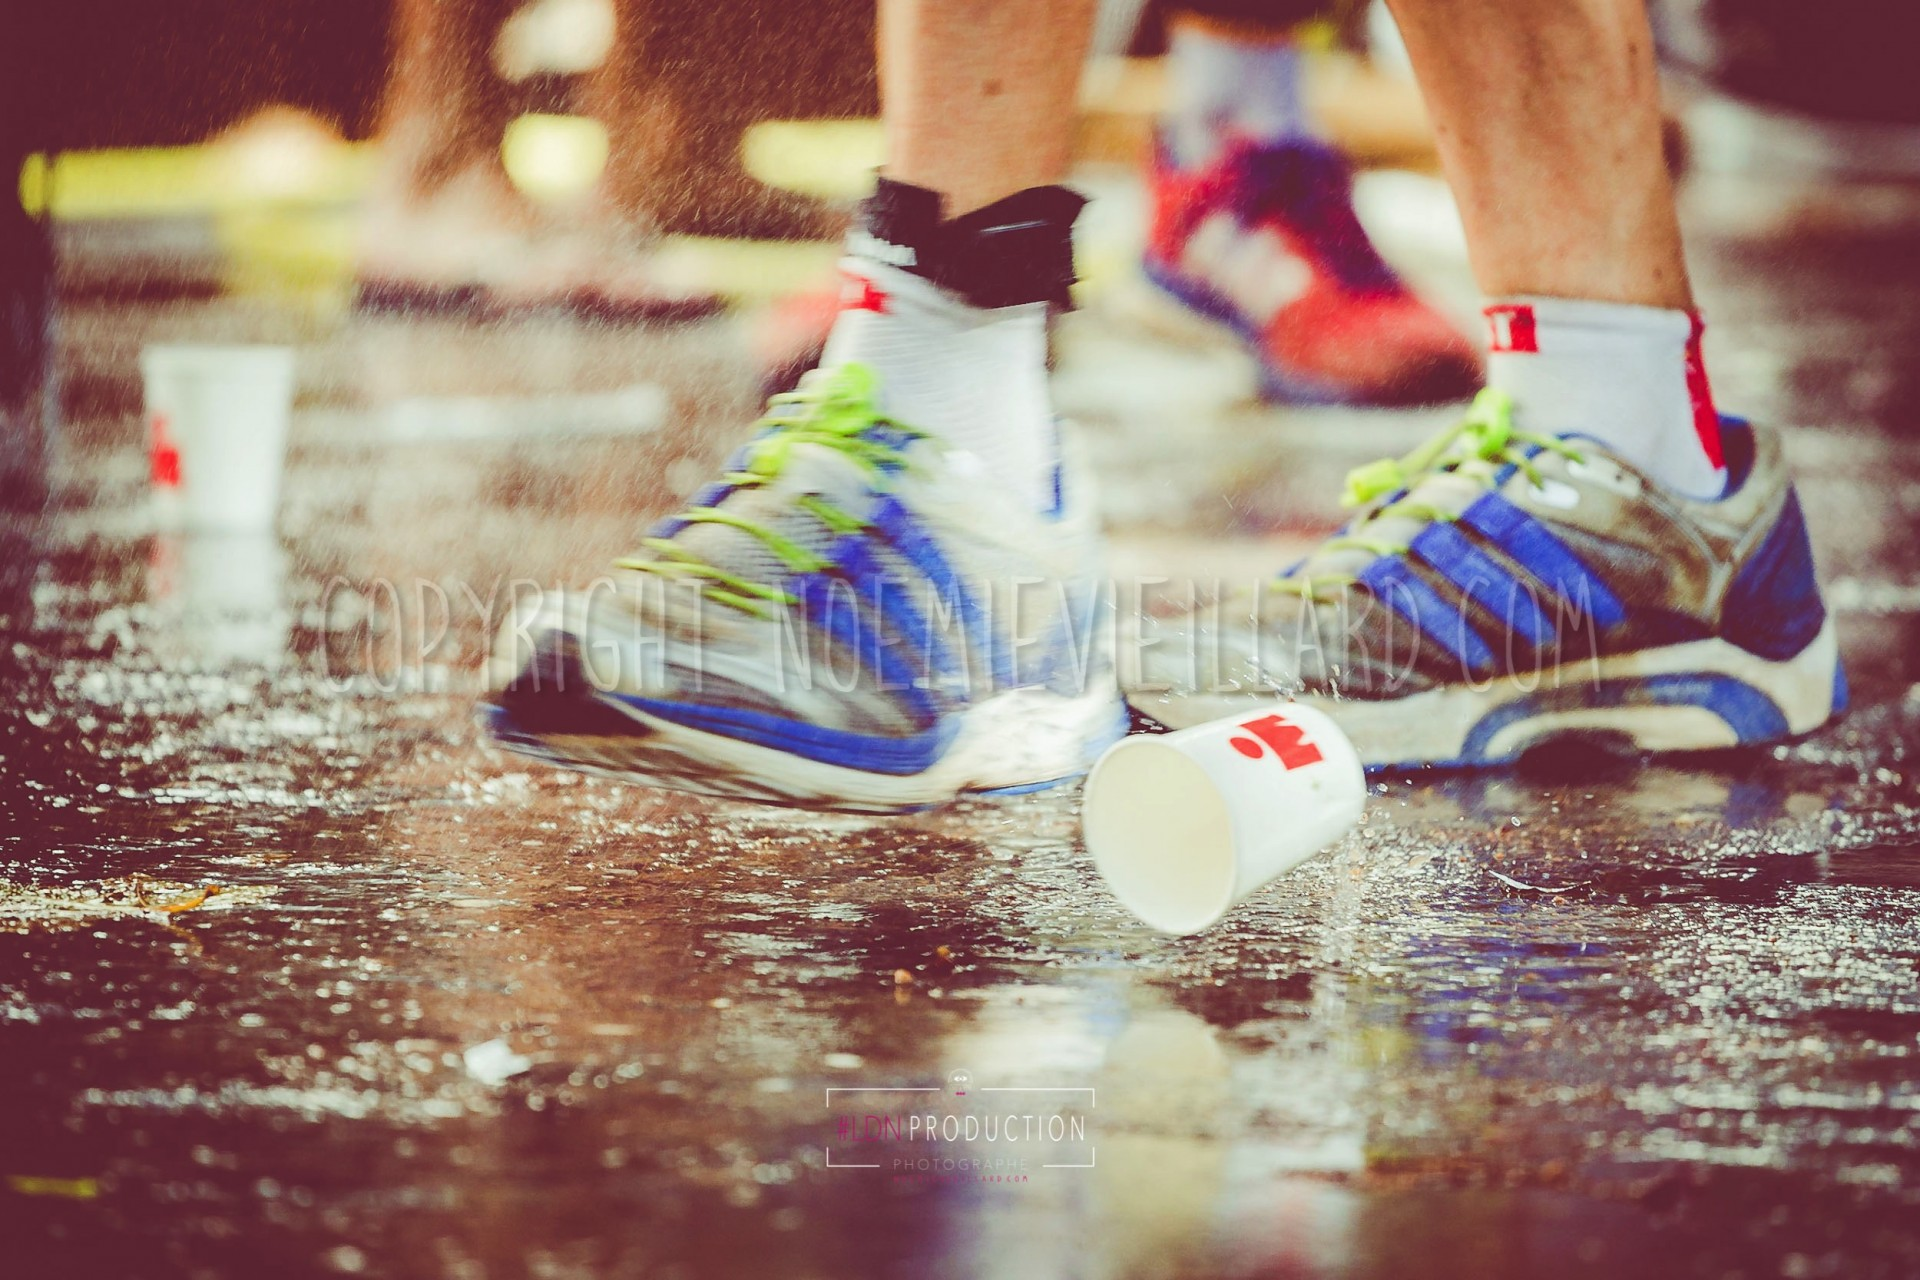 photo-ironman-vichy-2015©-noemie-vieillard-7036